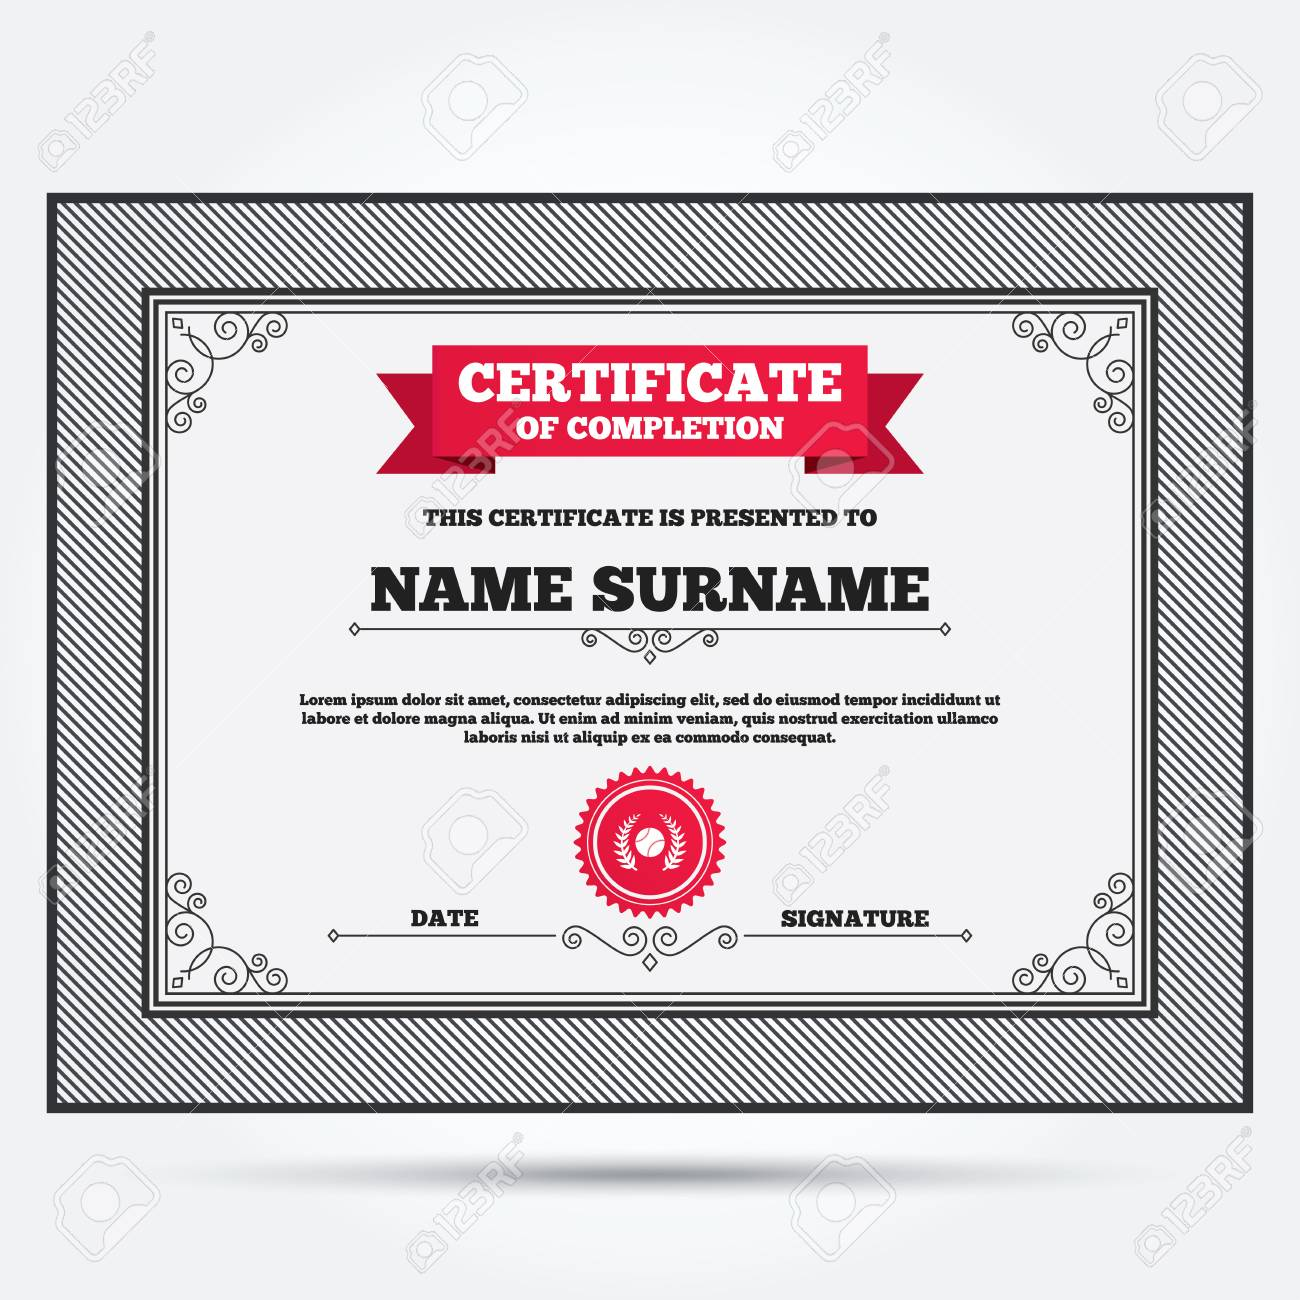 Certificate of completion baseball sign icon sport laurel wreath certificate of completion baseball sign icon sport laurel wreath symbol winner award yadclub Choice Image